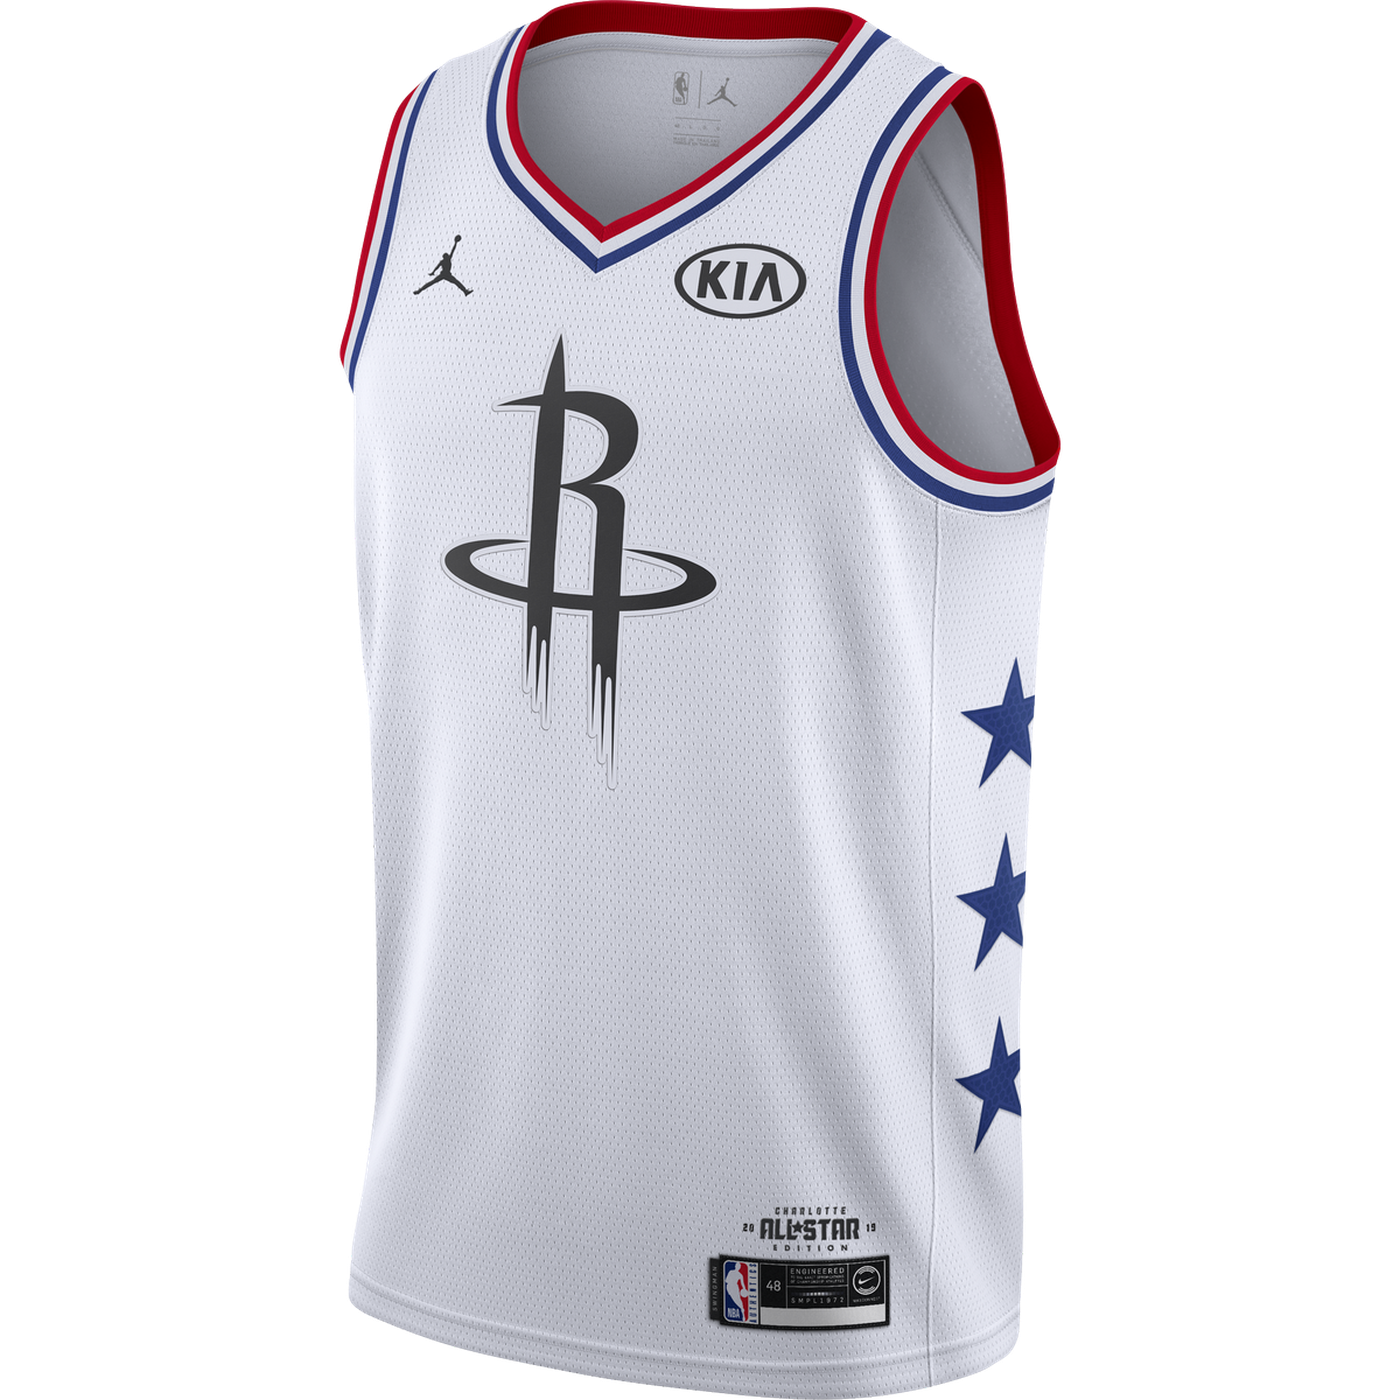 Nba All Star Game 2019 Where You Can Order The Official Apparel And